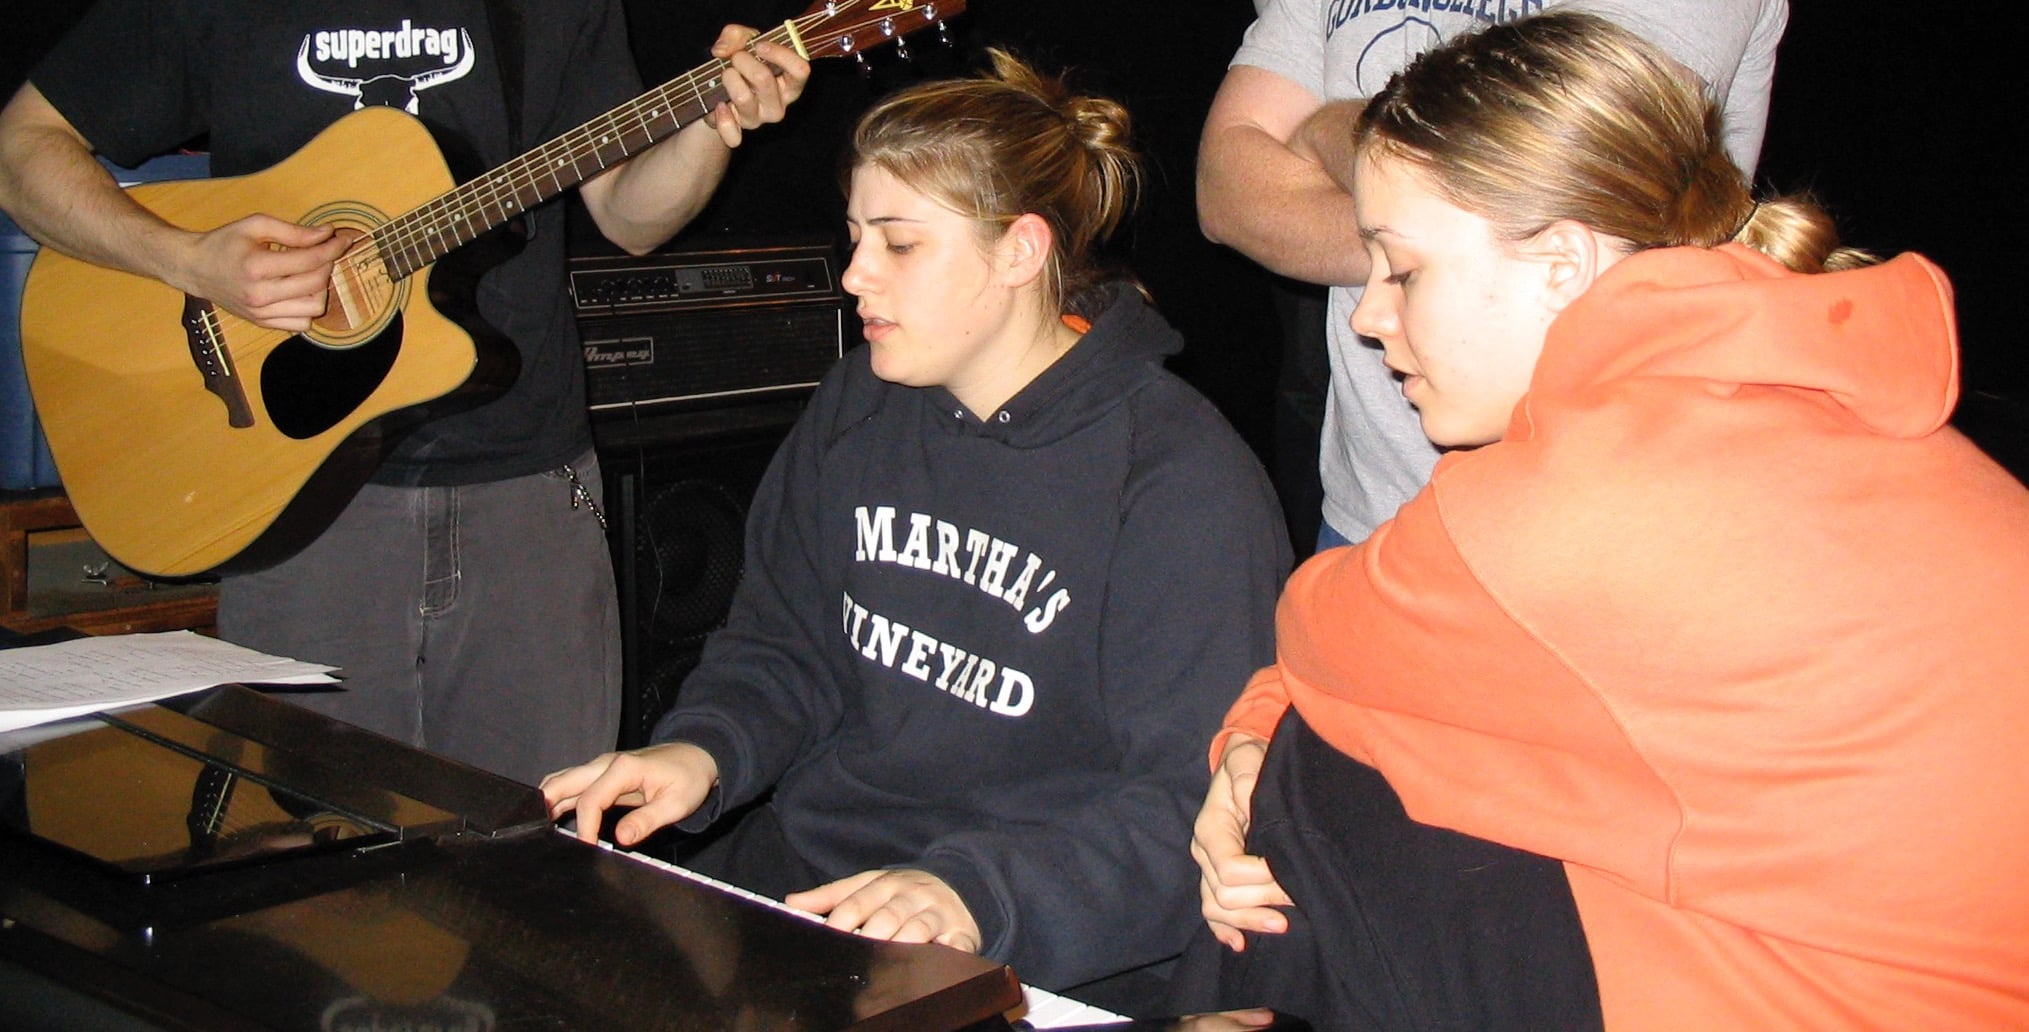 One of our oldest pics together...please note Jill's MV hoodie :) We're thinking this MUST HAVE BEEN a middle of the night rehearsal because we look SOOOOOO tired!